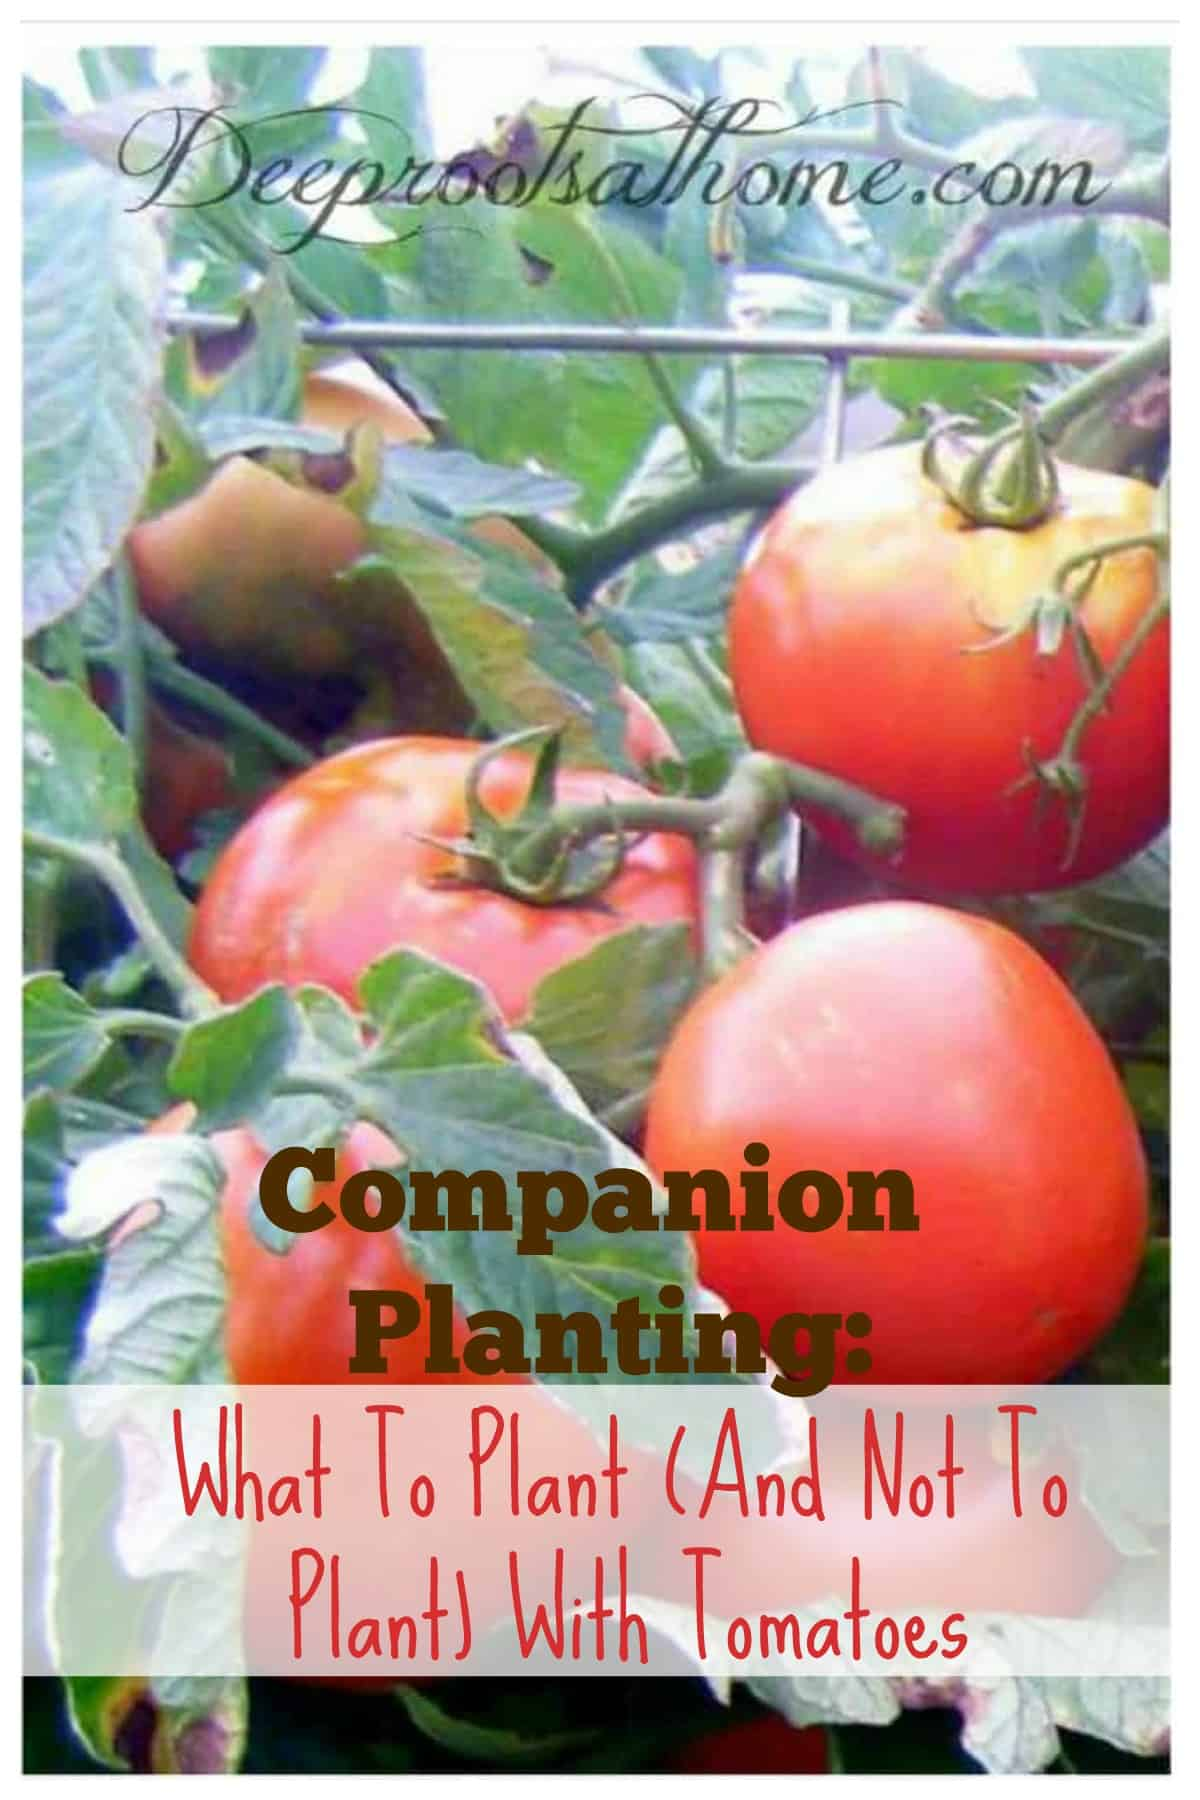 Companion Planting: What To Plant (& Not Plant) With Tomatoes. Ripe tomatoes on the vine and companion plants to grow nearby.